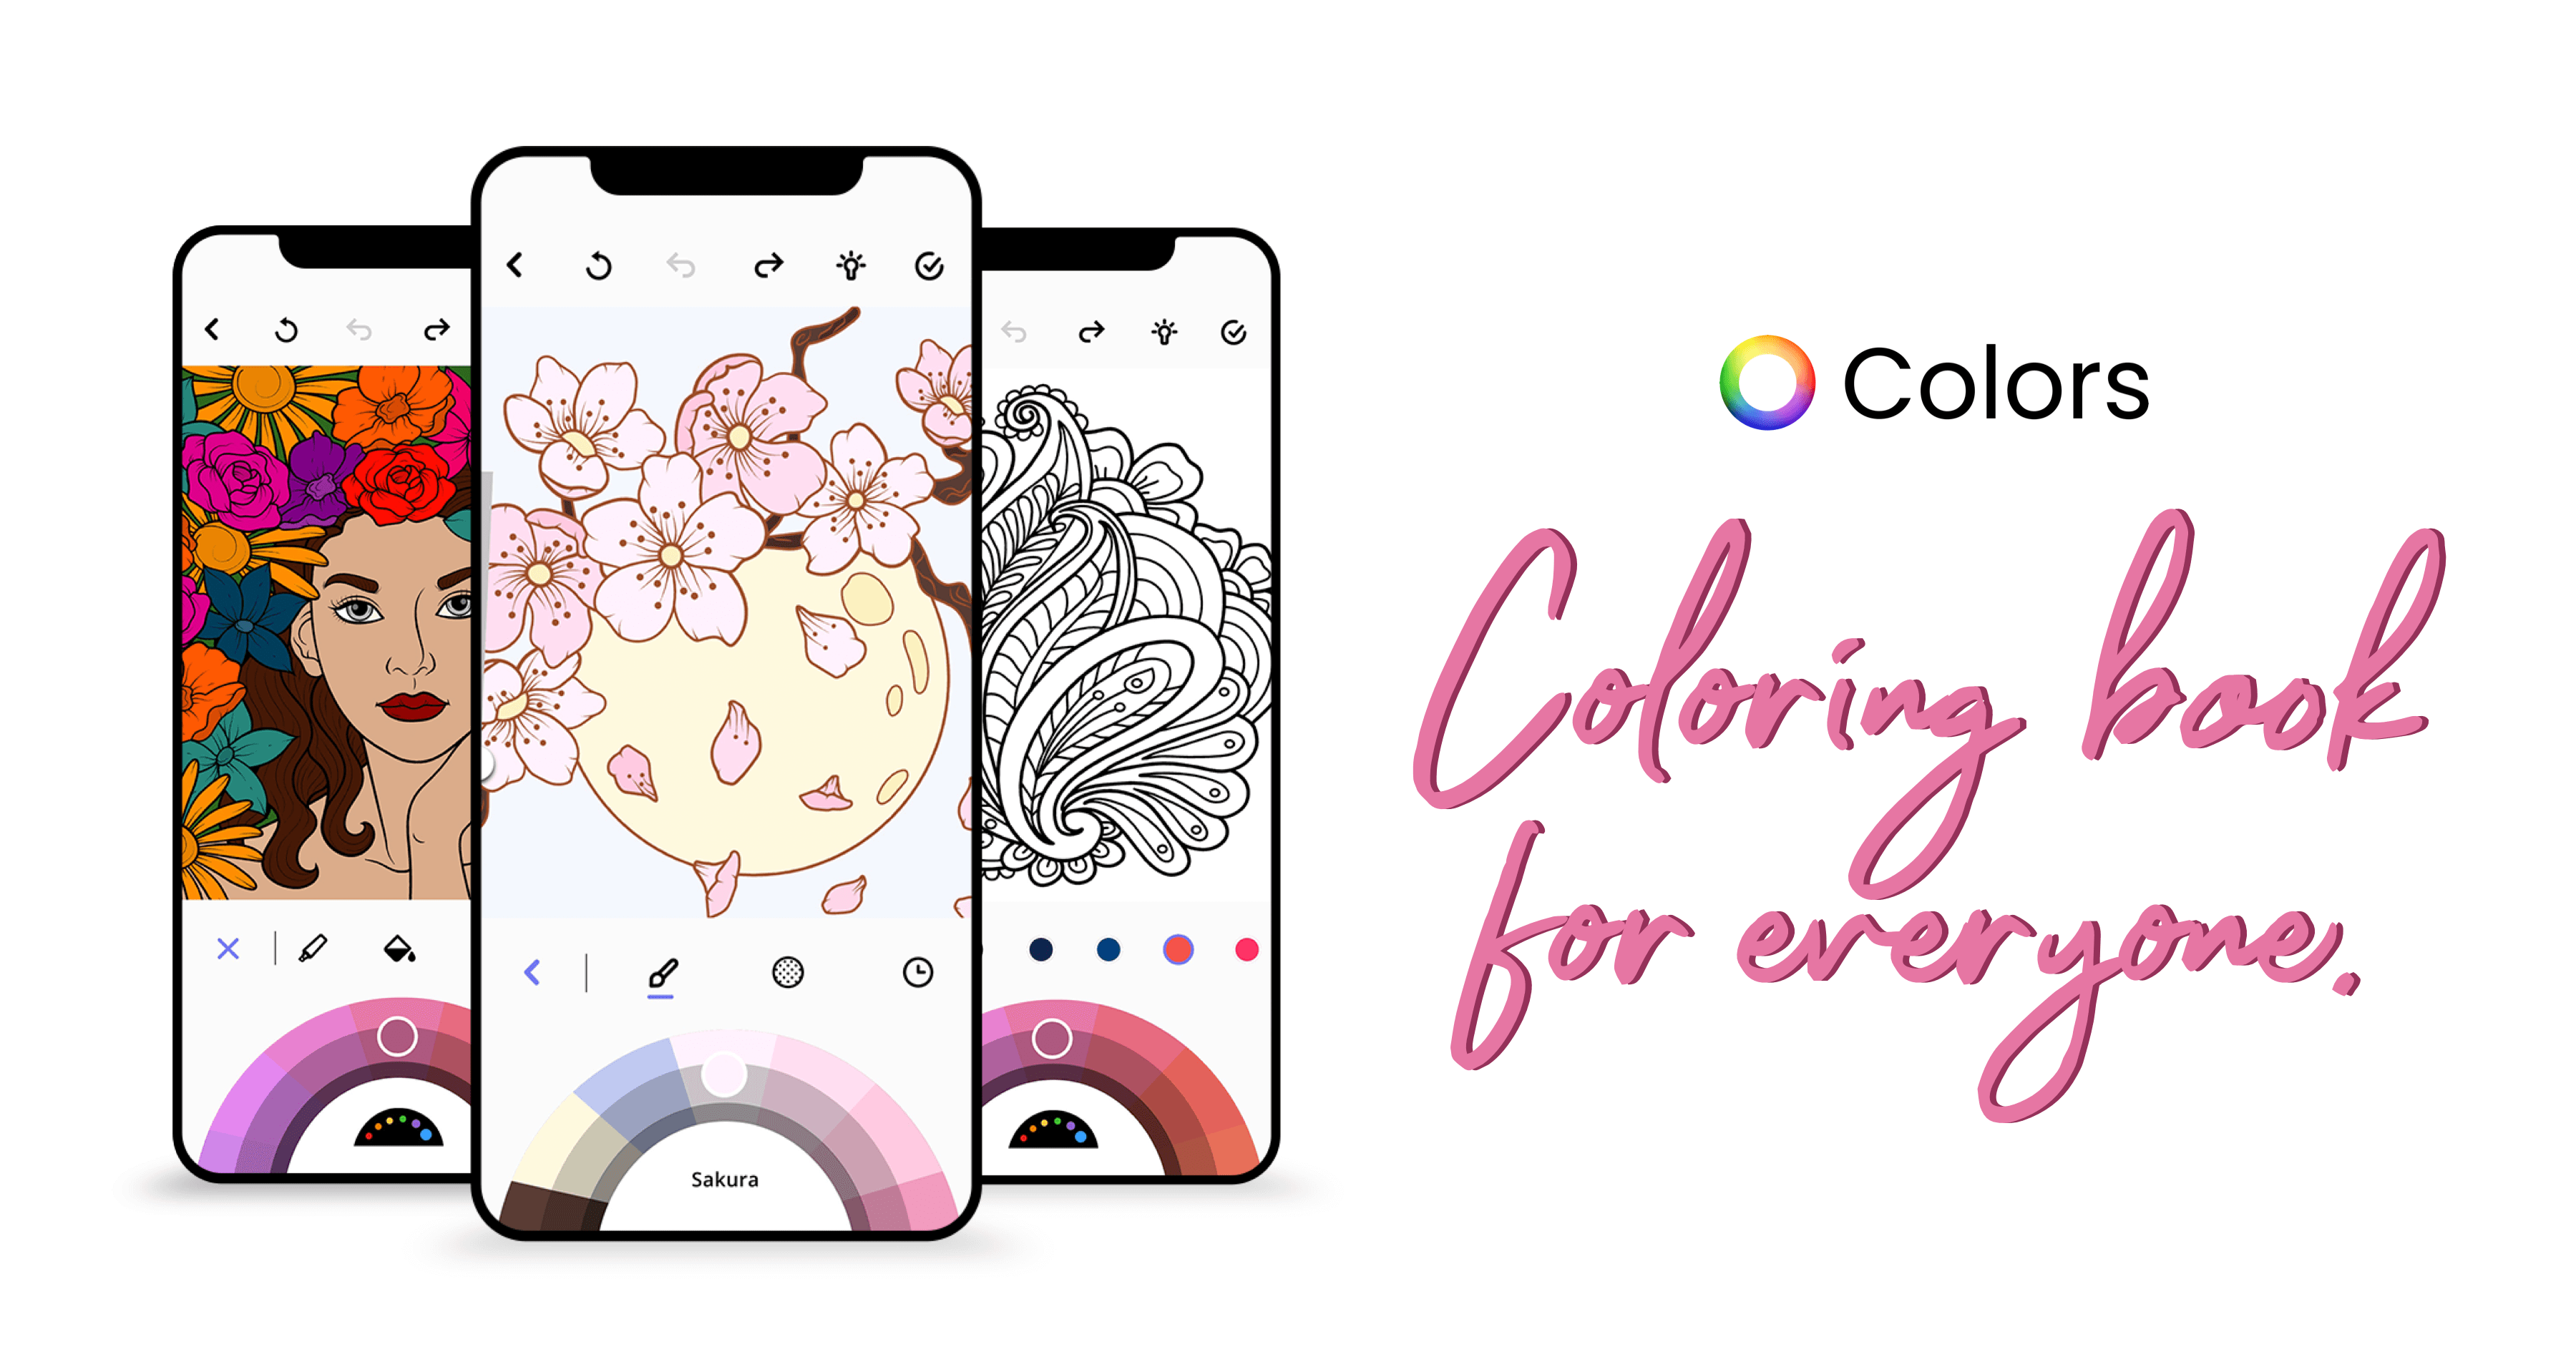 Tap To Color Free Coloring Book App Colors Launches Globally Coloring Book App Coloring Books Free Coloring